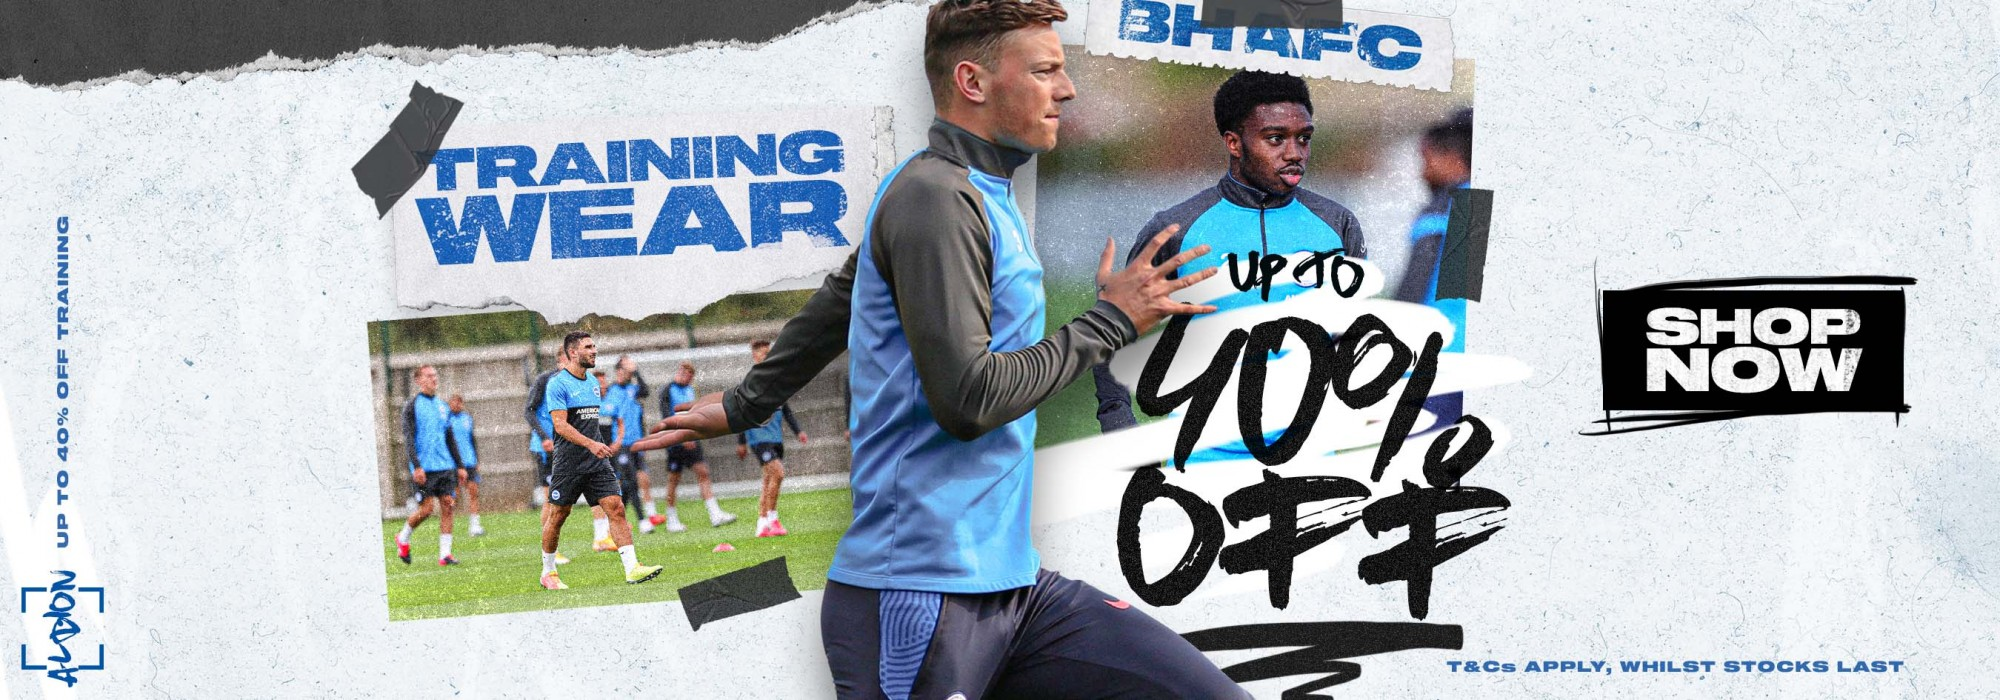 Up to 40% off selected training wear